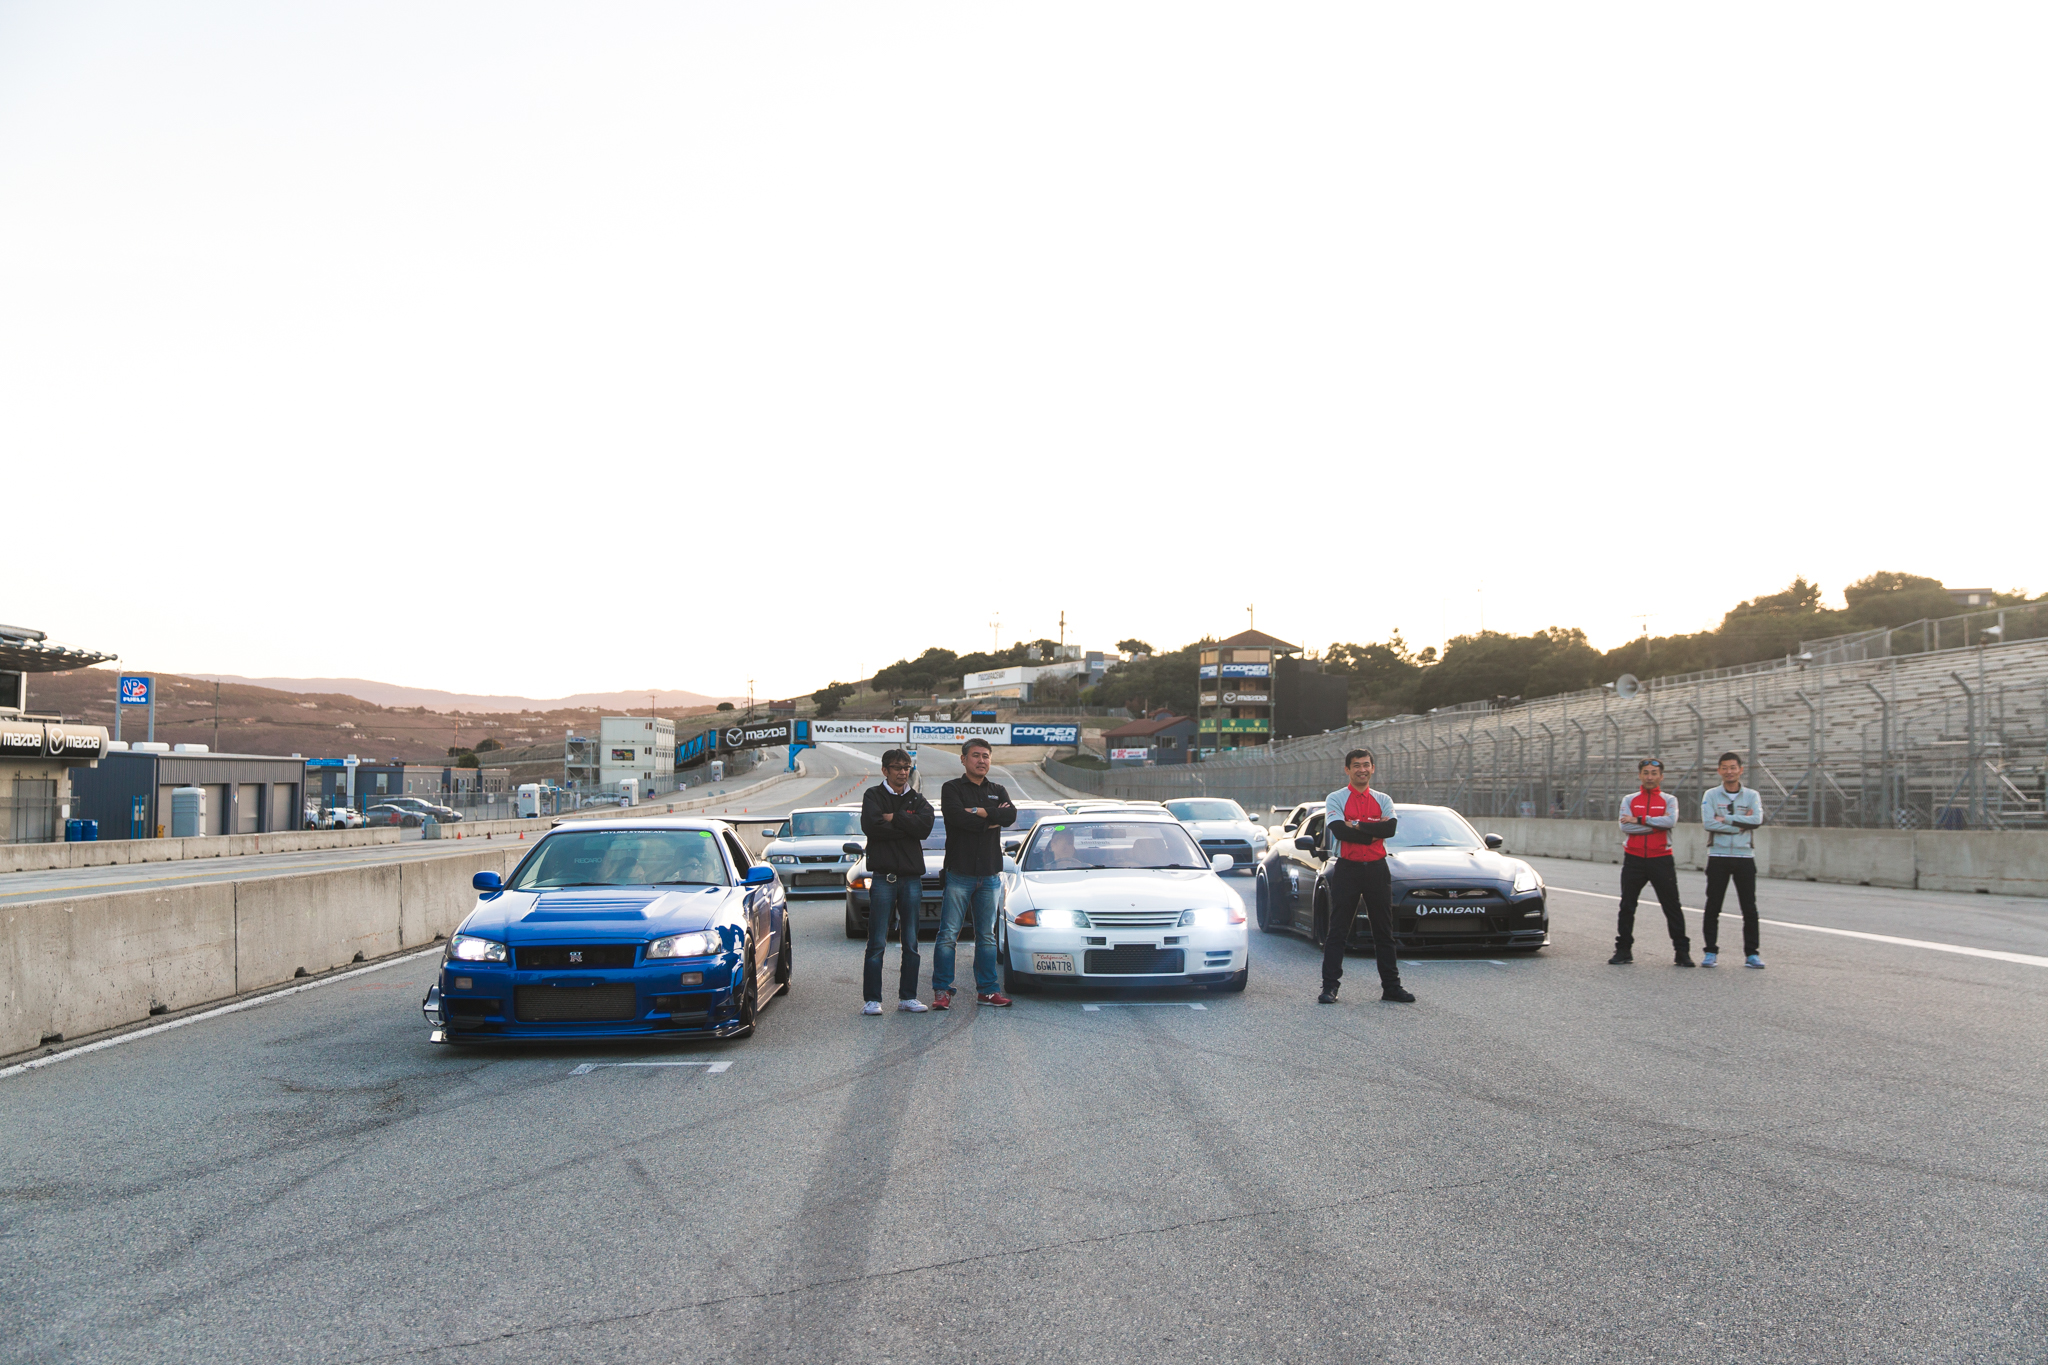 Stay_Driven_Rs_Day-135.jpg